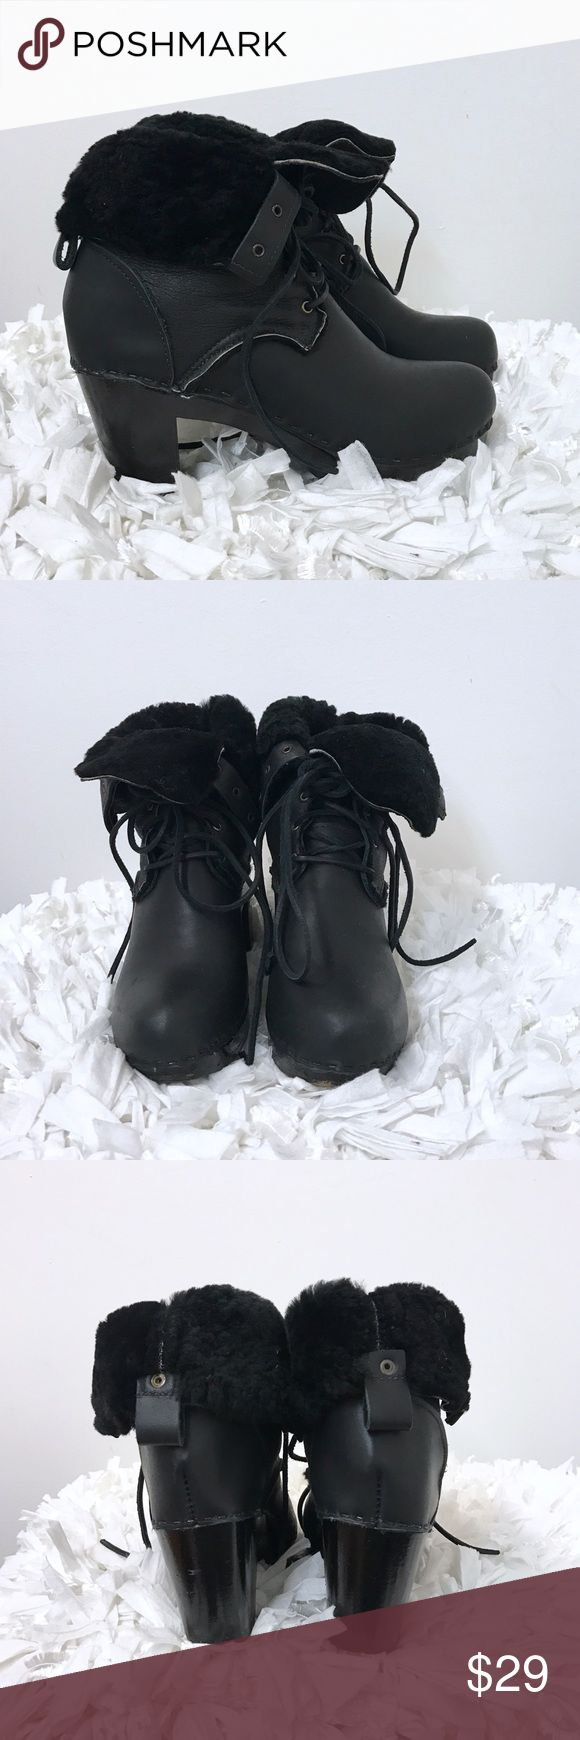 Genuine Leather Real fur ankle booties Sz 39 9 Black leather ankle boots. Genuine Fur and leather. Very warm. Great condition. Lined all through the shoe and the soles. I do not see a brand anywhere , but they are amazingly made. Sz 9. none branded  Shoes Ankle Boots & Booties